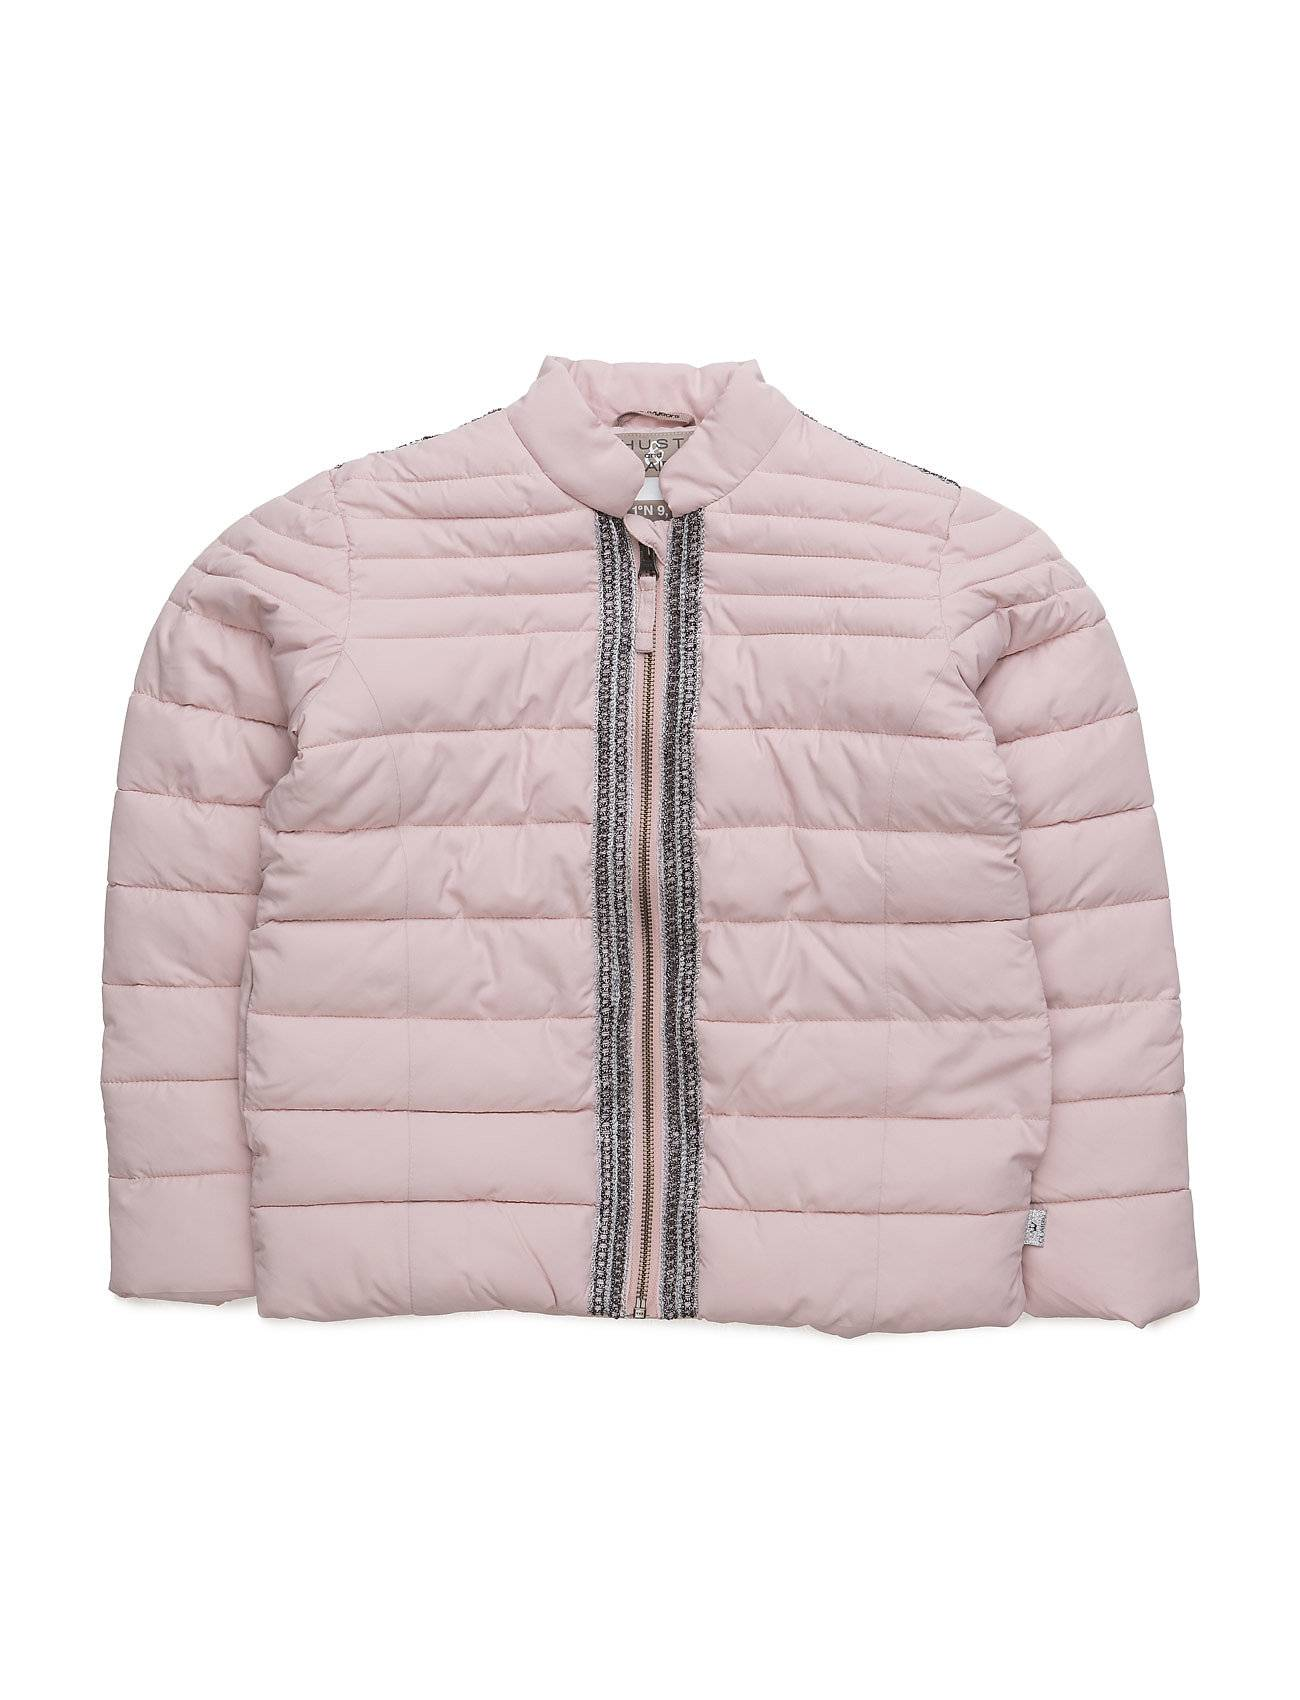 Hust & Claire Jacket